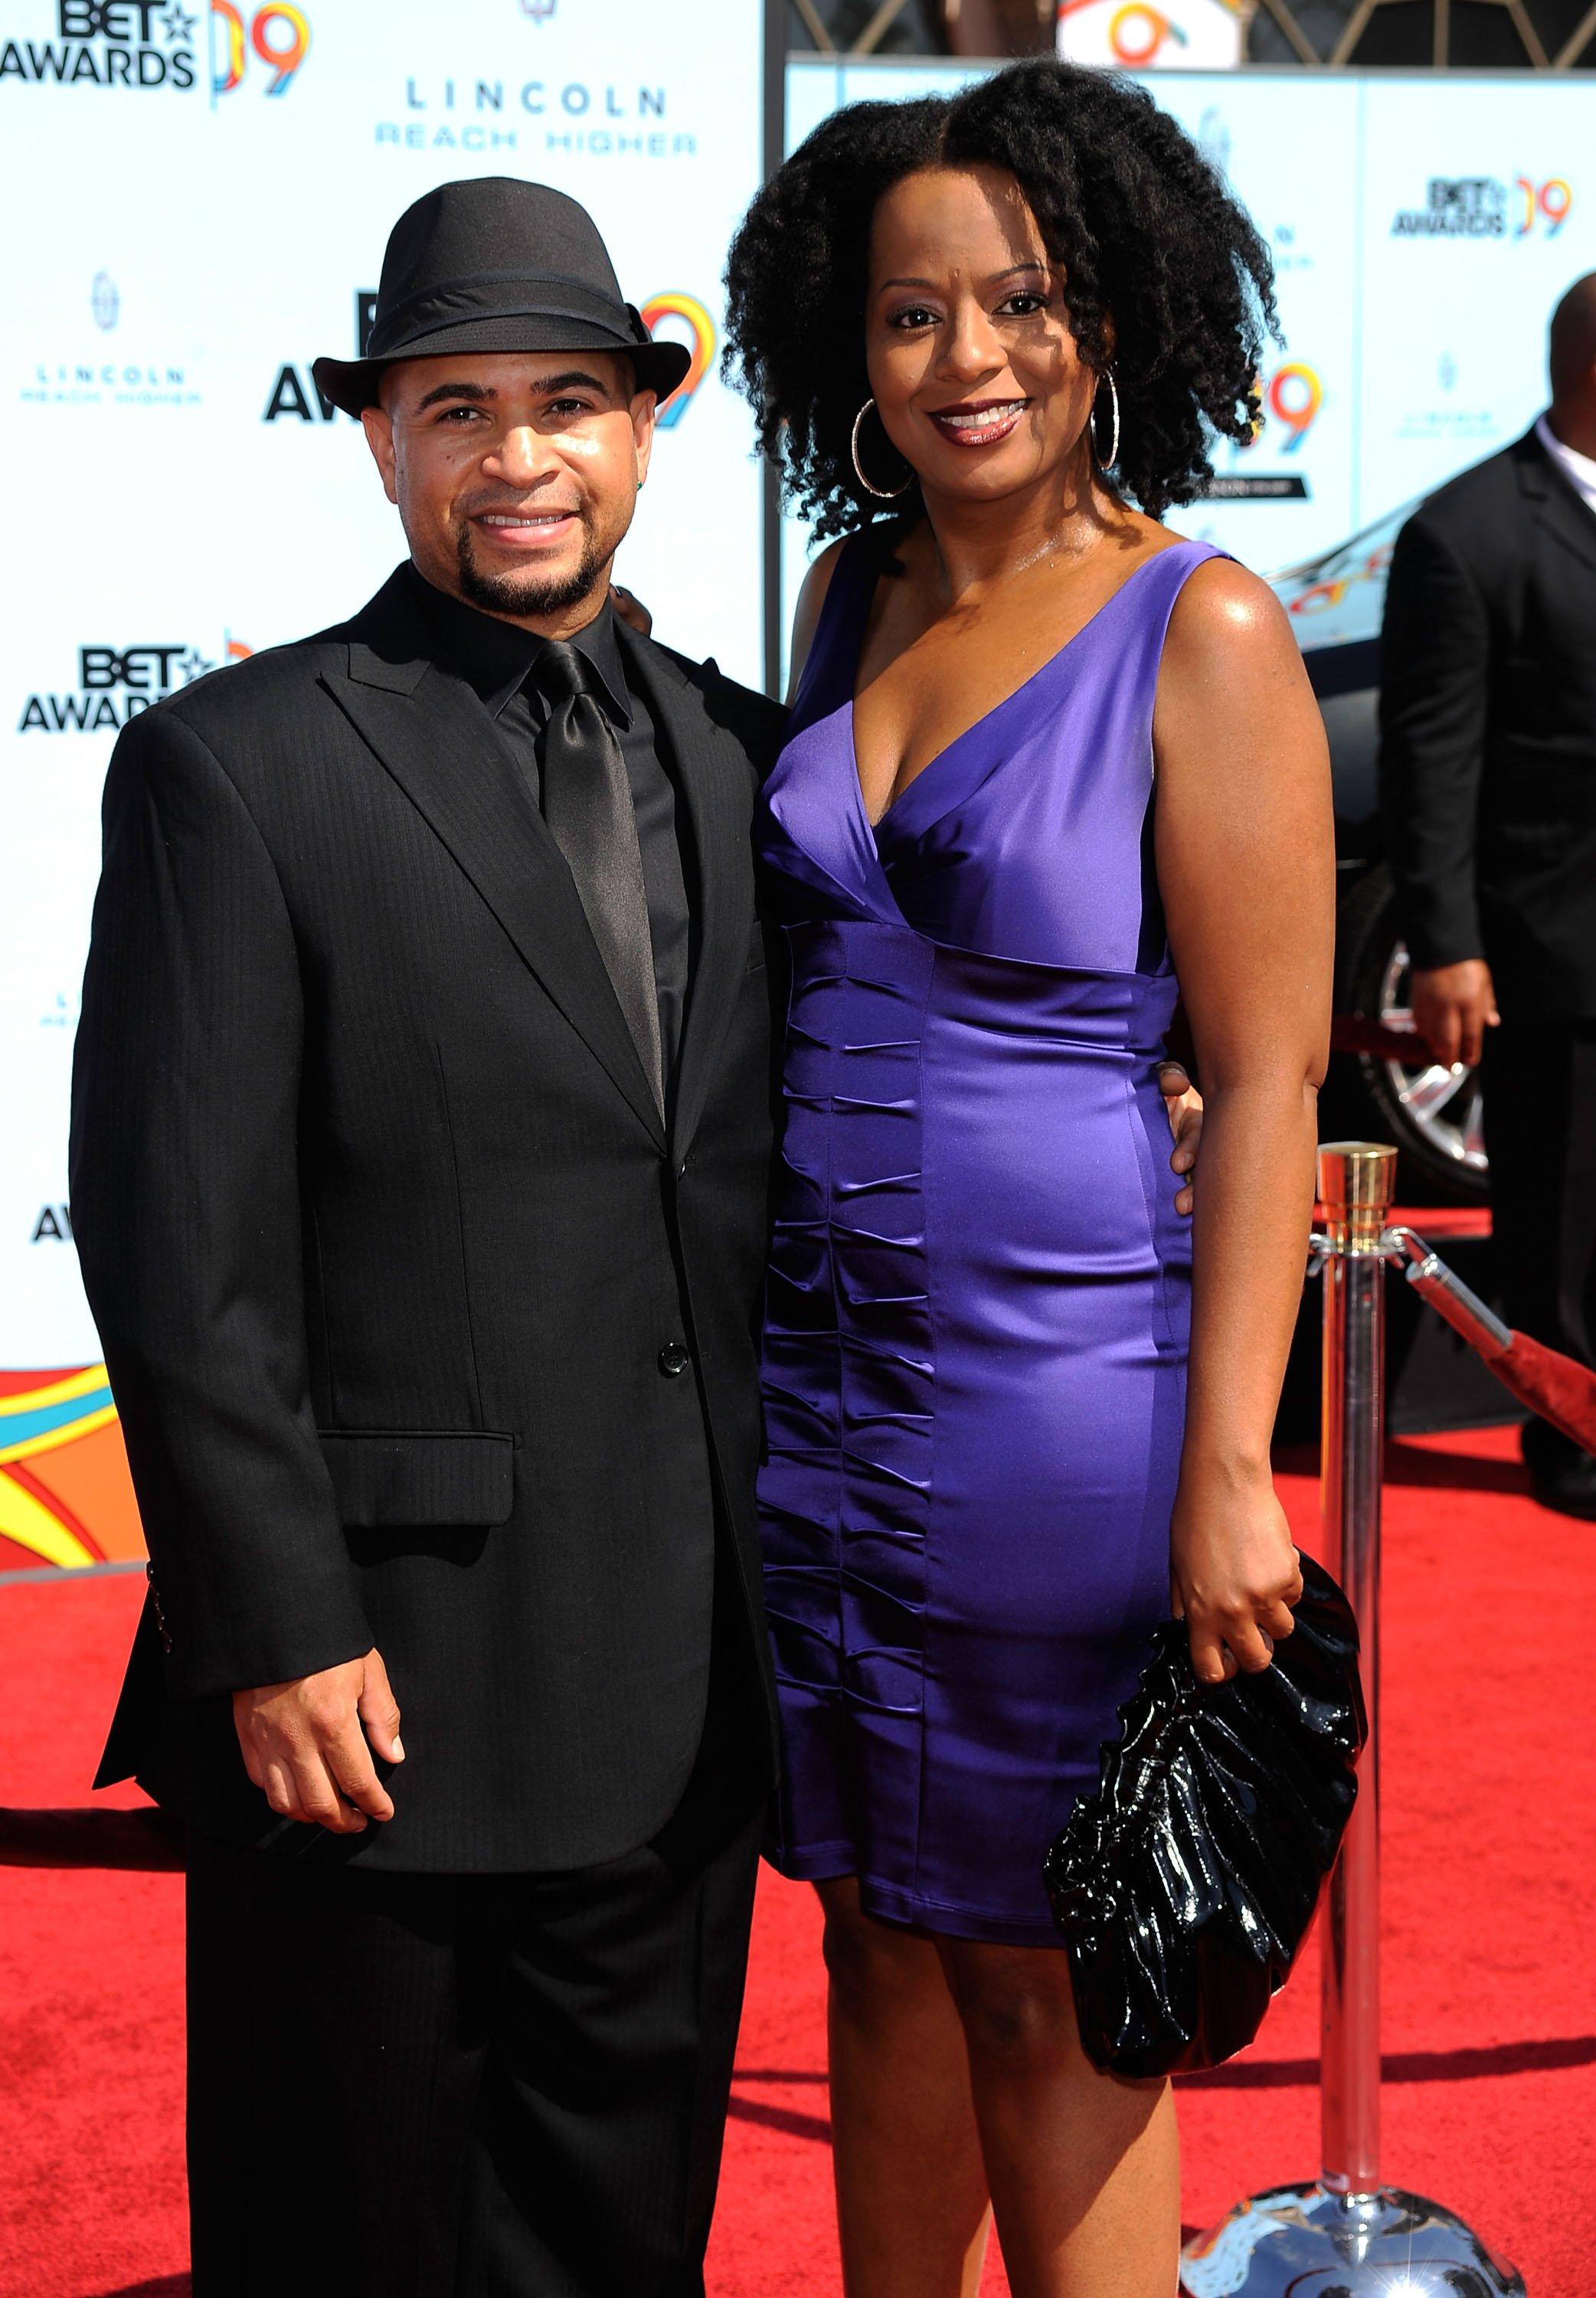 Darryl M. Bell and Tempestt Bledsoe at the 2009 BET Awards on June 28, 2009 in Los Angeles, California | Photo: Getty Images